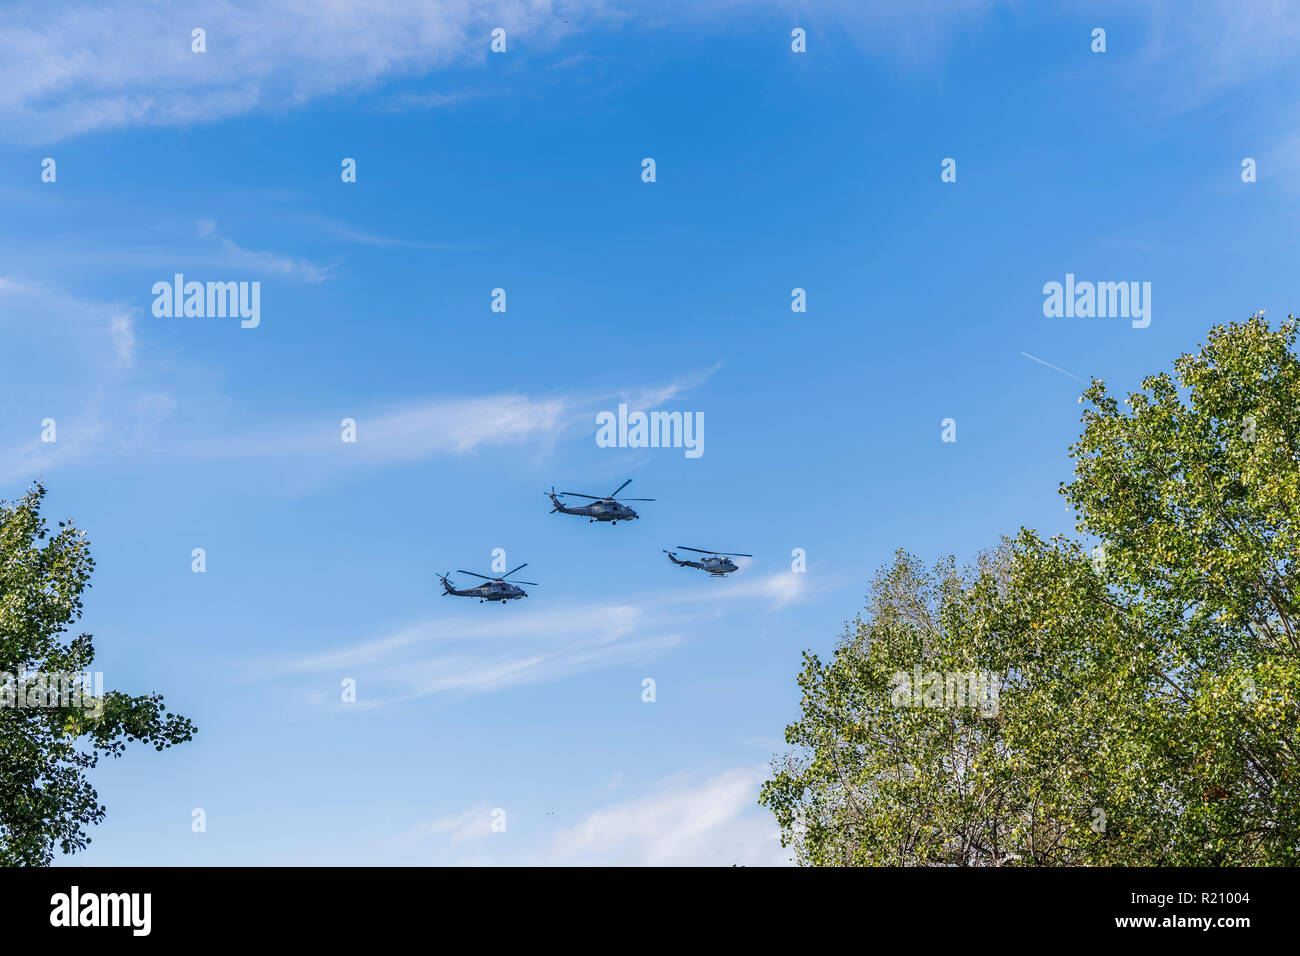 Greek Air Force Seahawk & Agusta Bell helicopters flying. SH Sikorsky Seahawk & Agusta Bell AB-212 frigate Anti Submarine Warfare helicopters. Stock Photo